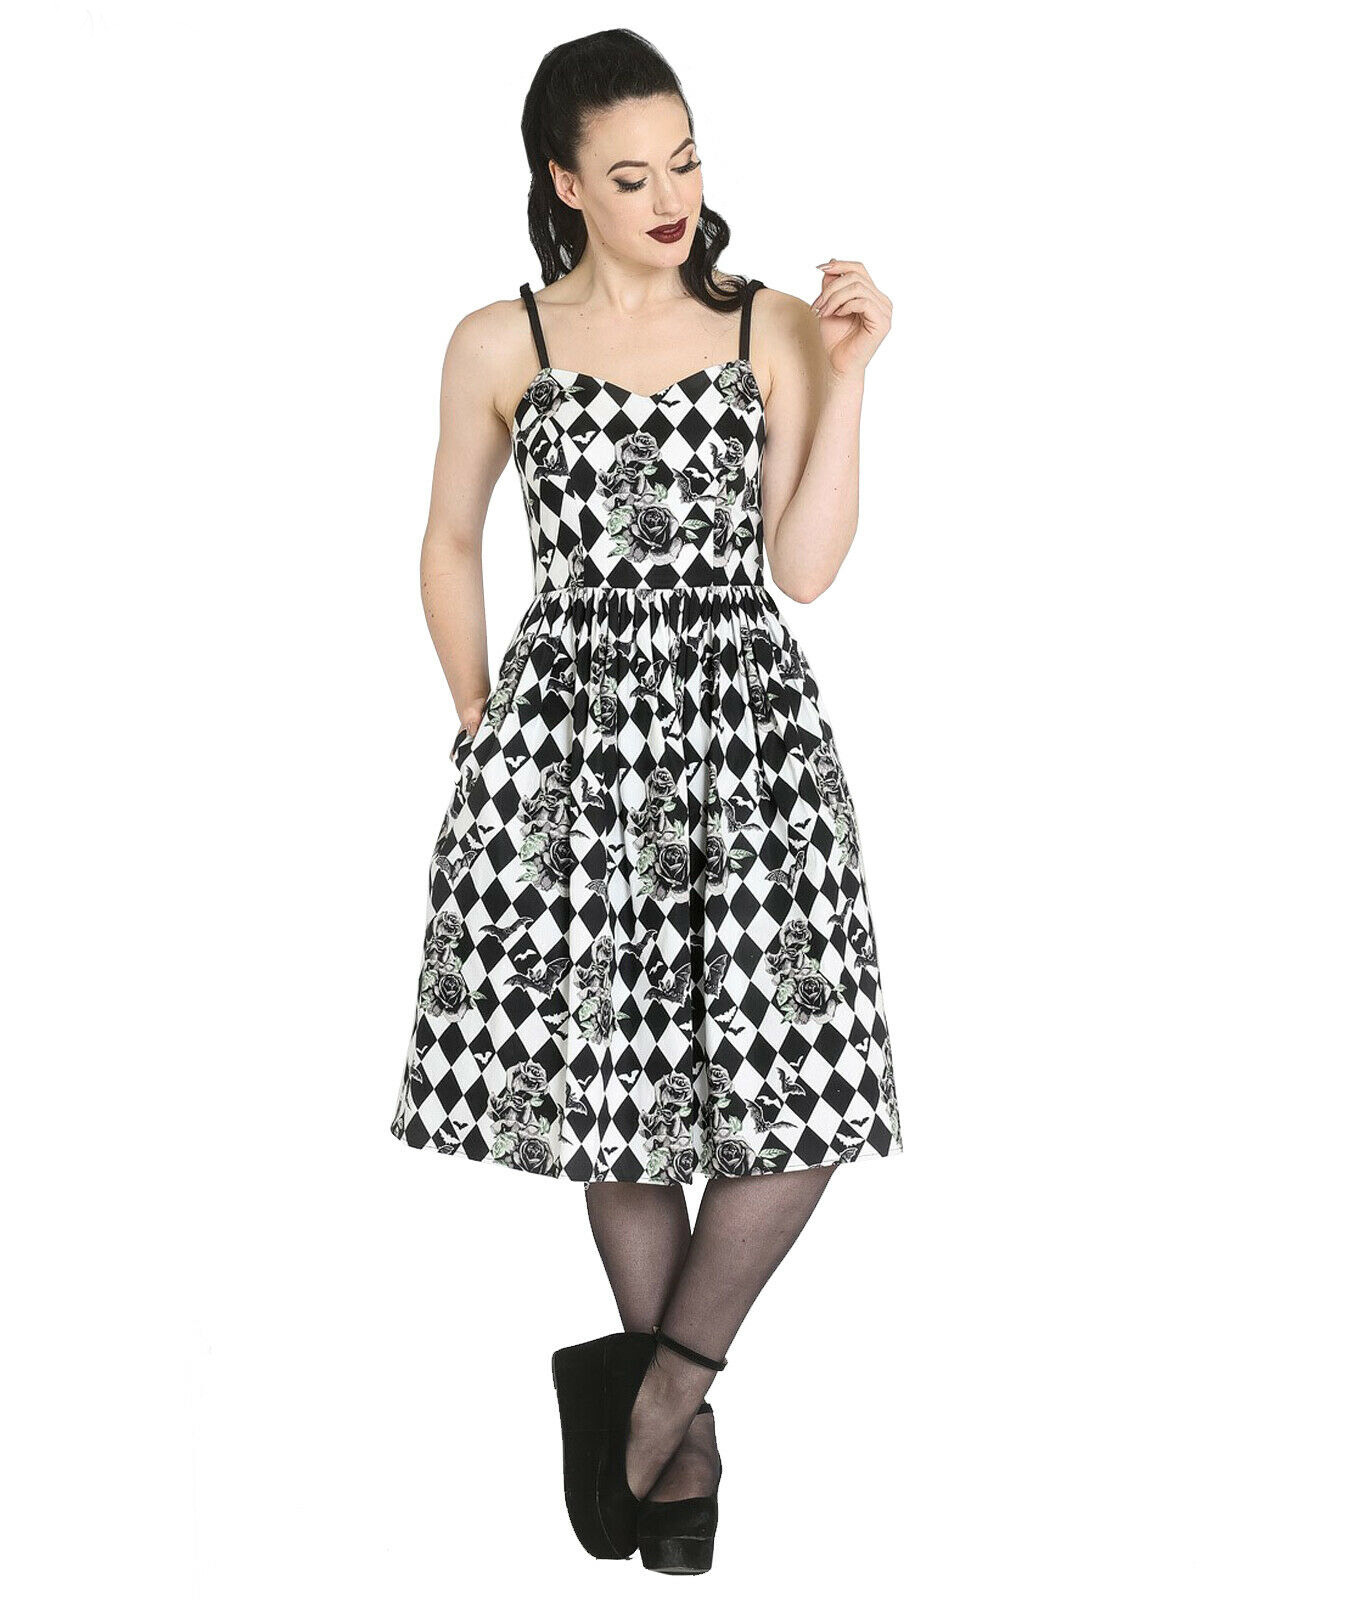 Hell-Bunny-Black-Harlequin-Pinup-50s-Gothic-Dress-HAUNTLEY-Bats-Roses-All-Sizes thumbnail 23